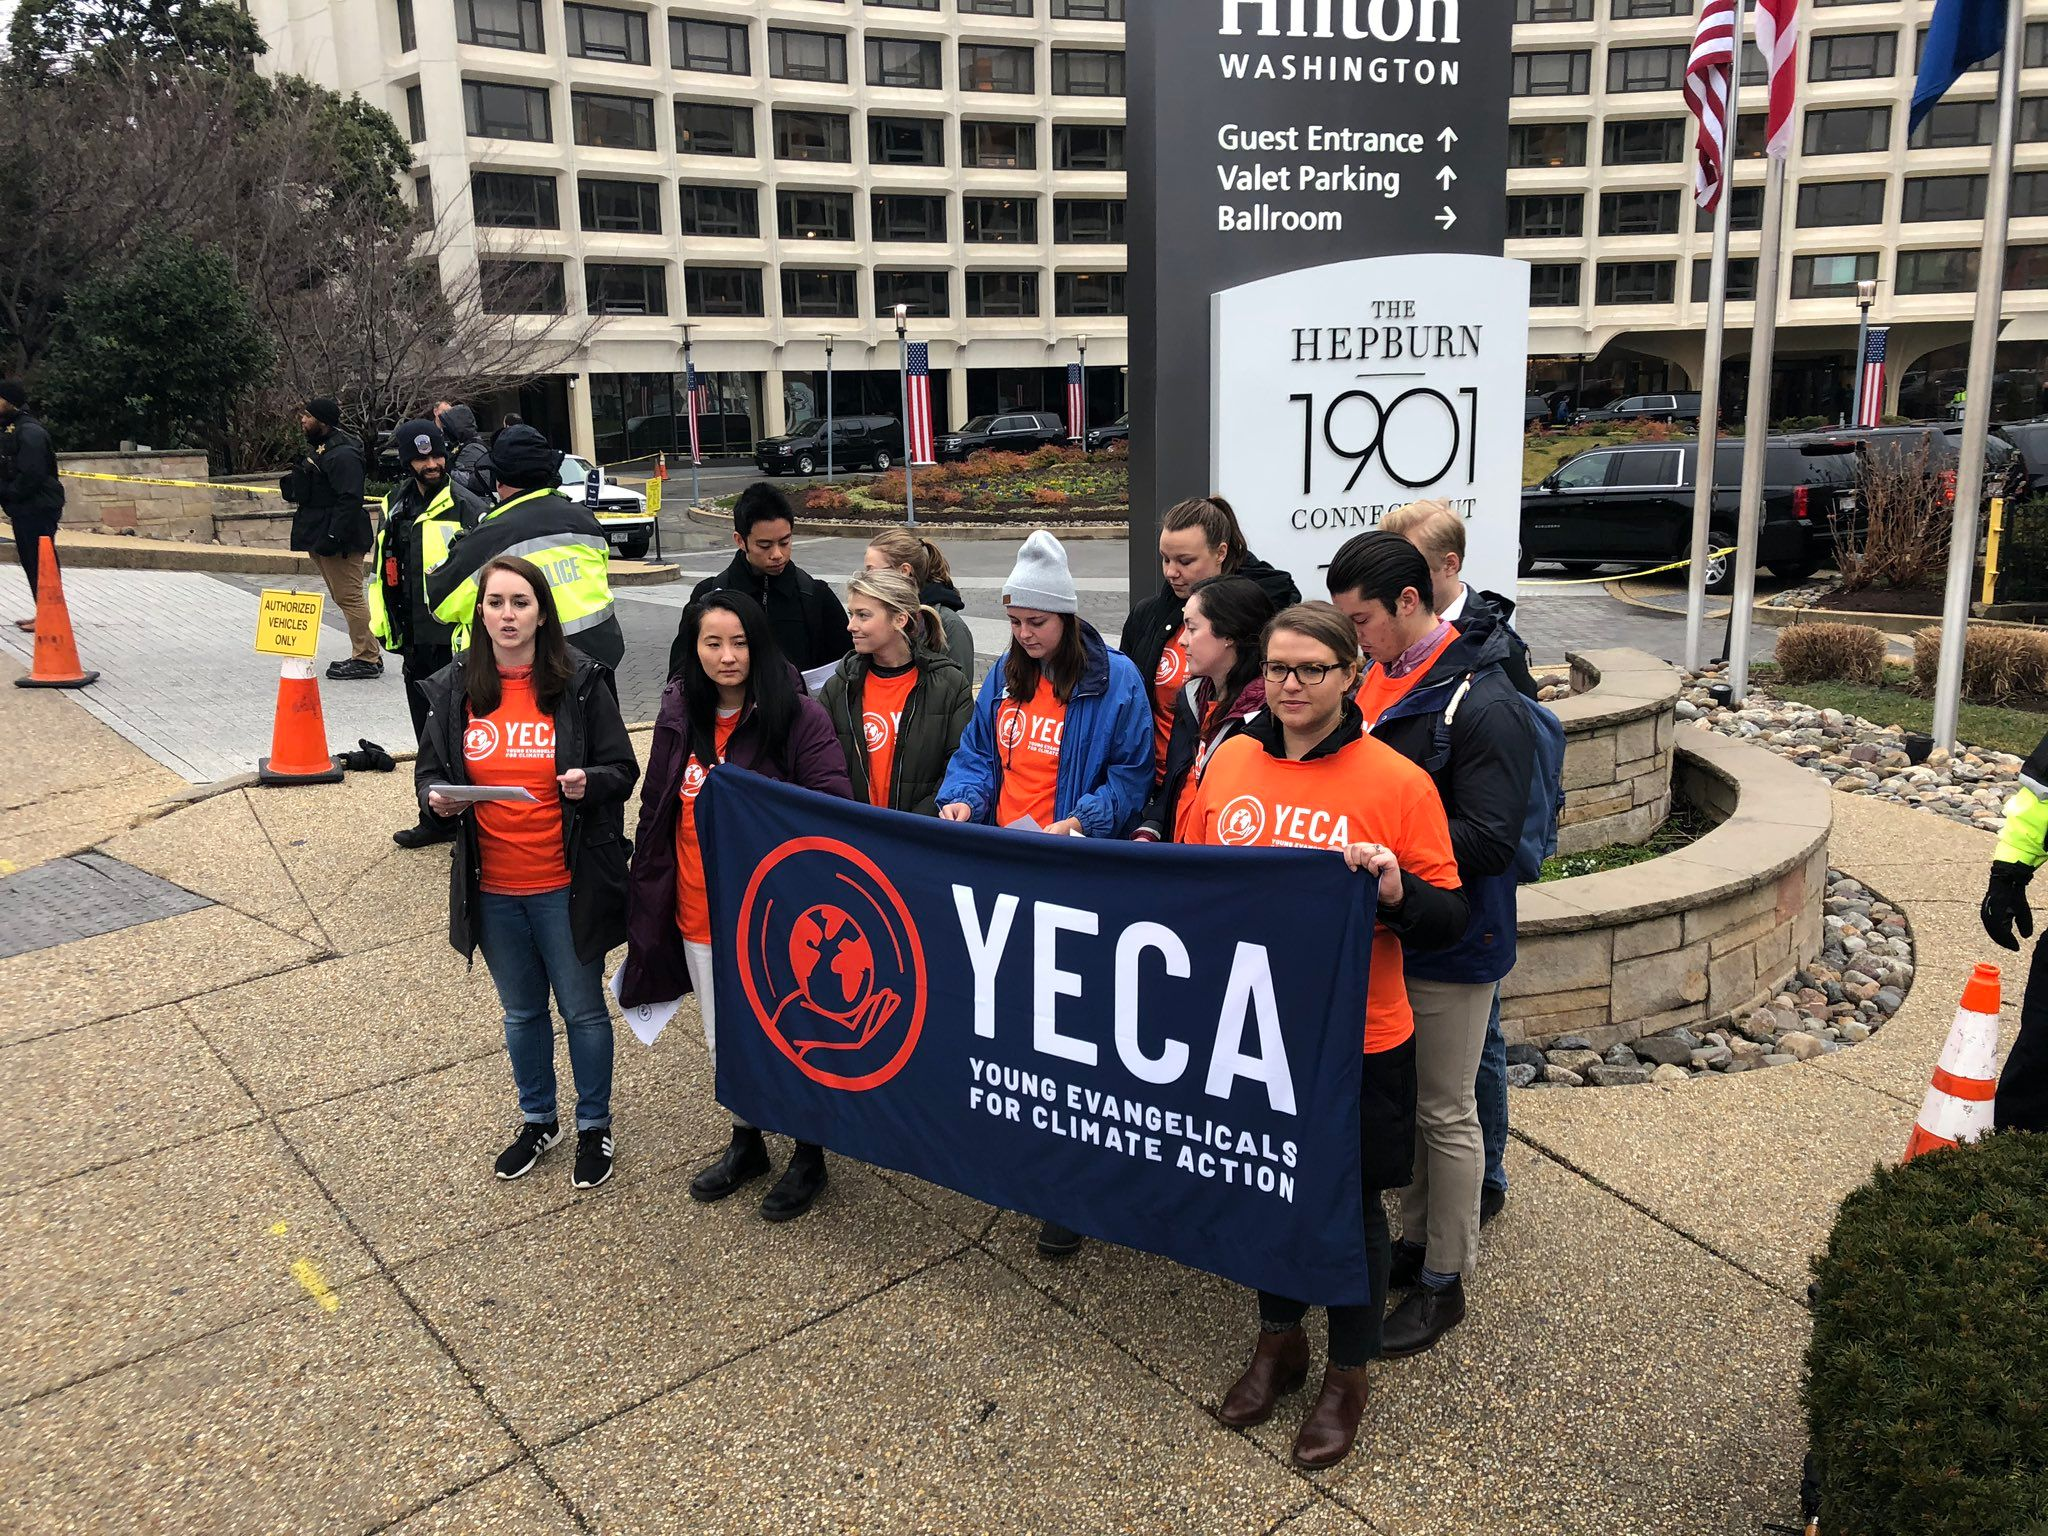 YECA Demonstrates for Climate Action at National Prayer Breakfast